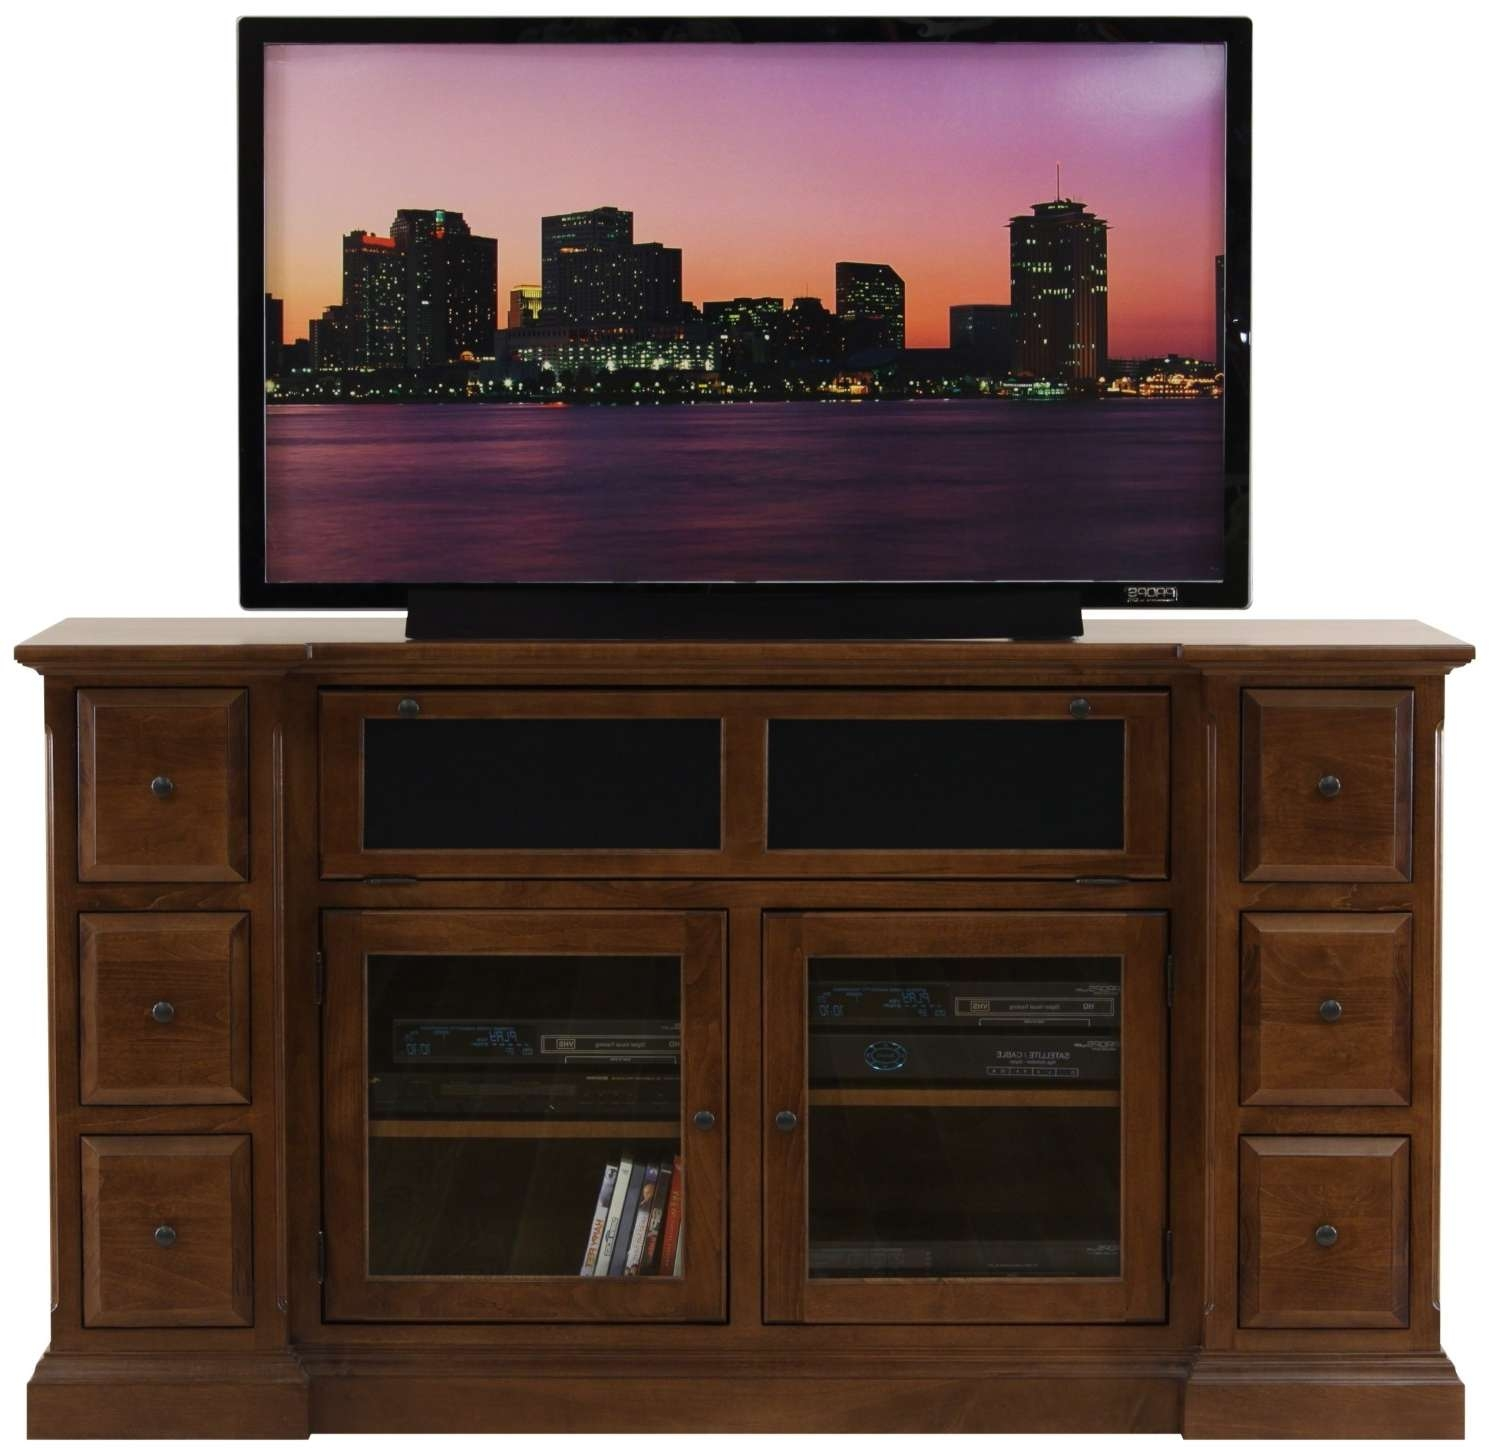 Dark Wood Tv Cabinet With Doors | Eo Furniture In Dark Wood Tv Cabinets (View 11 of 20)